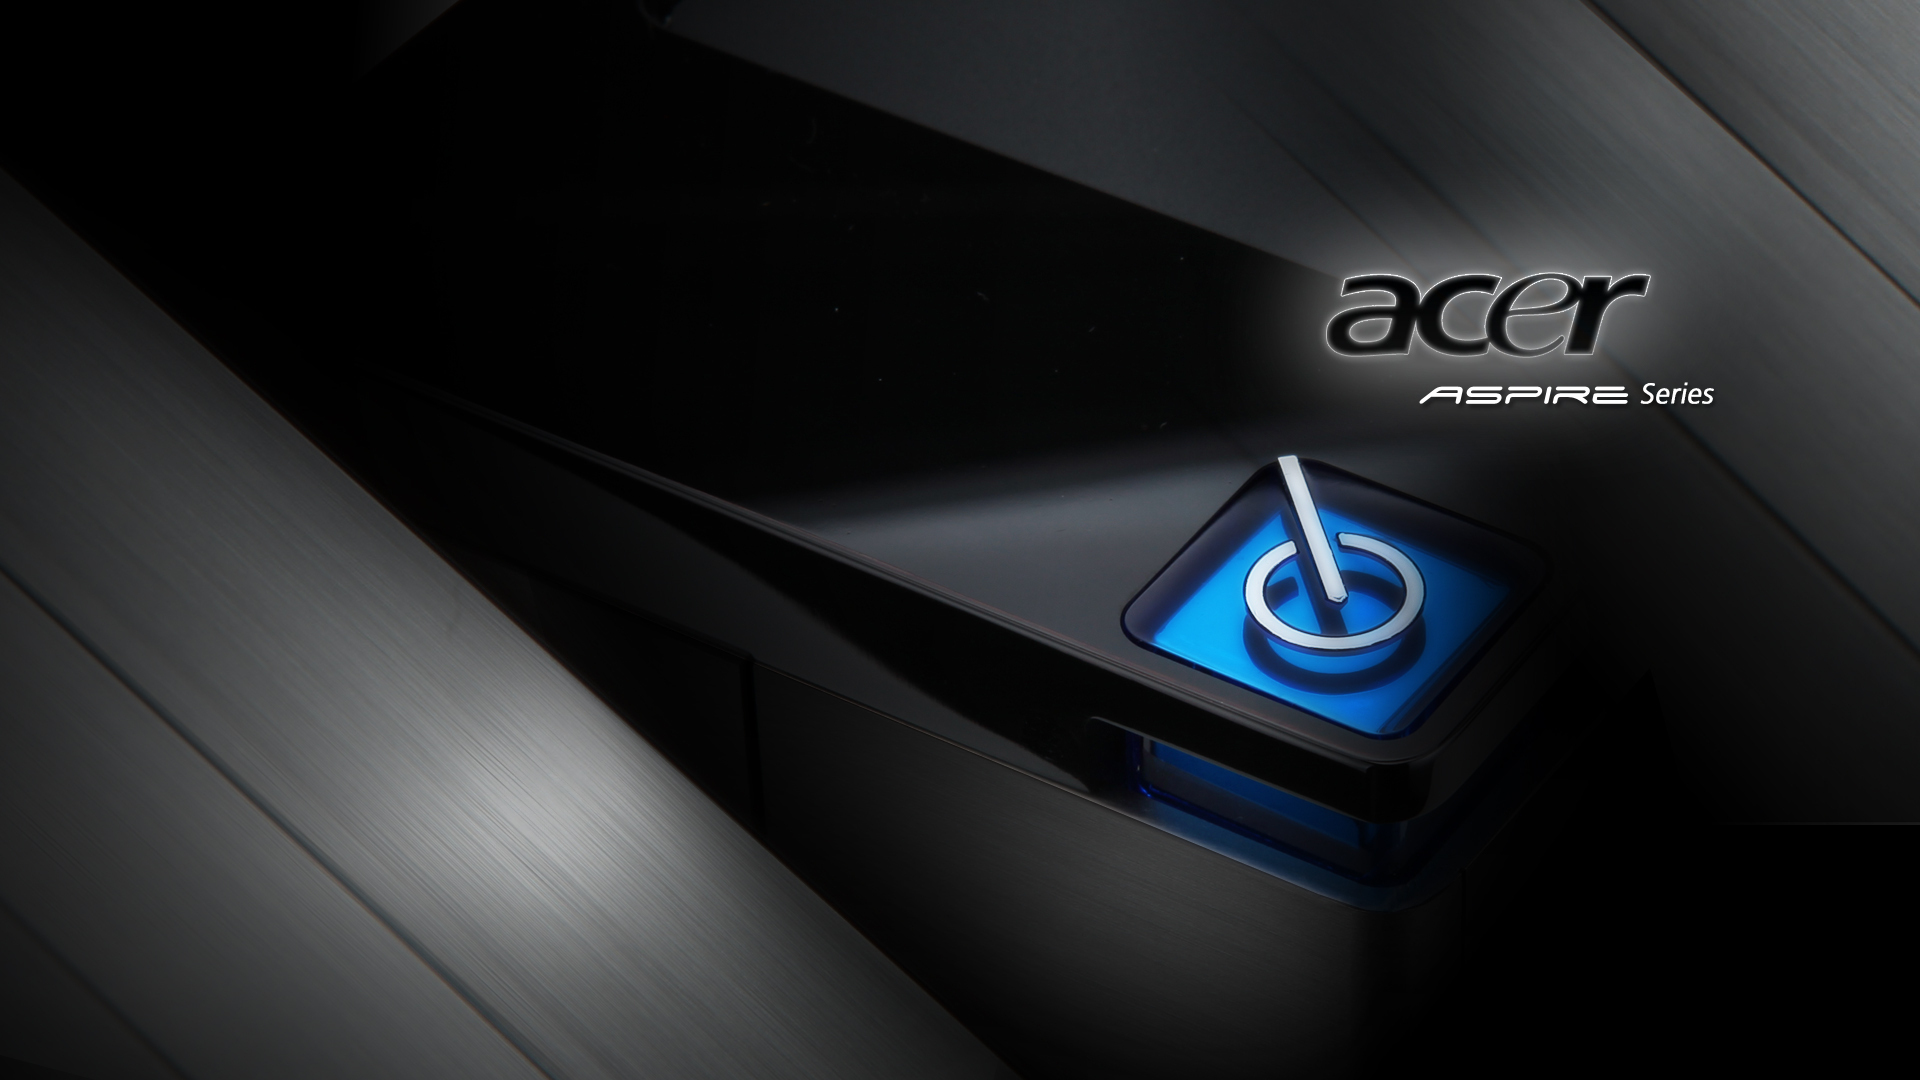 73 Acer Aspire One Wallpaper On Wallpapersafari